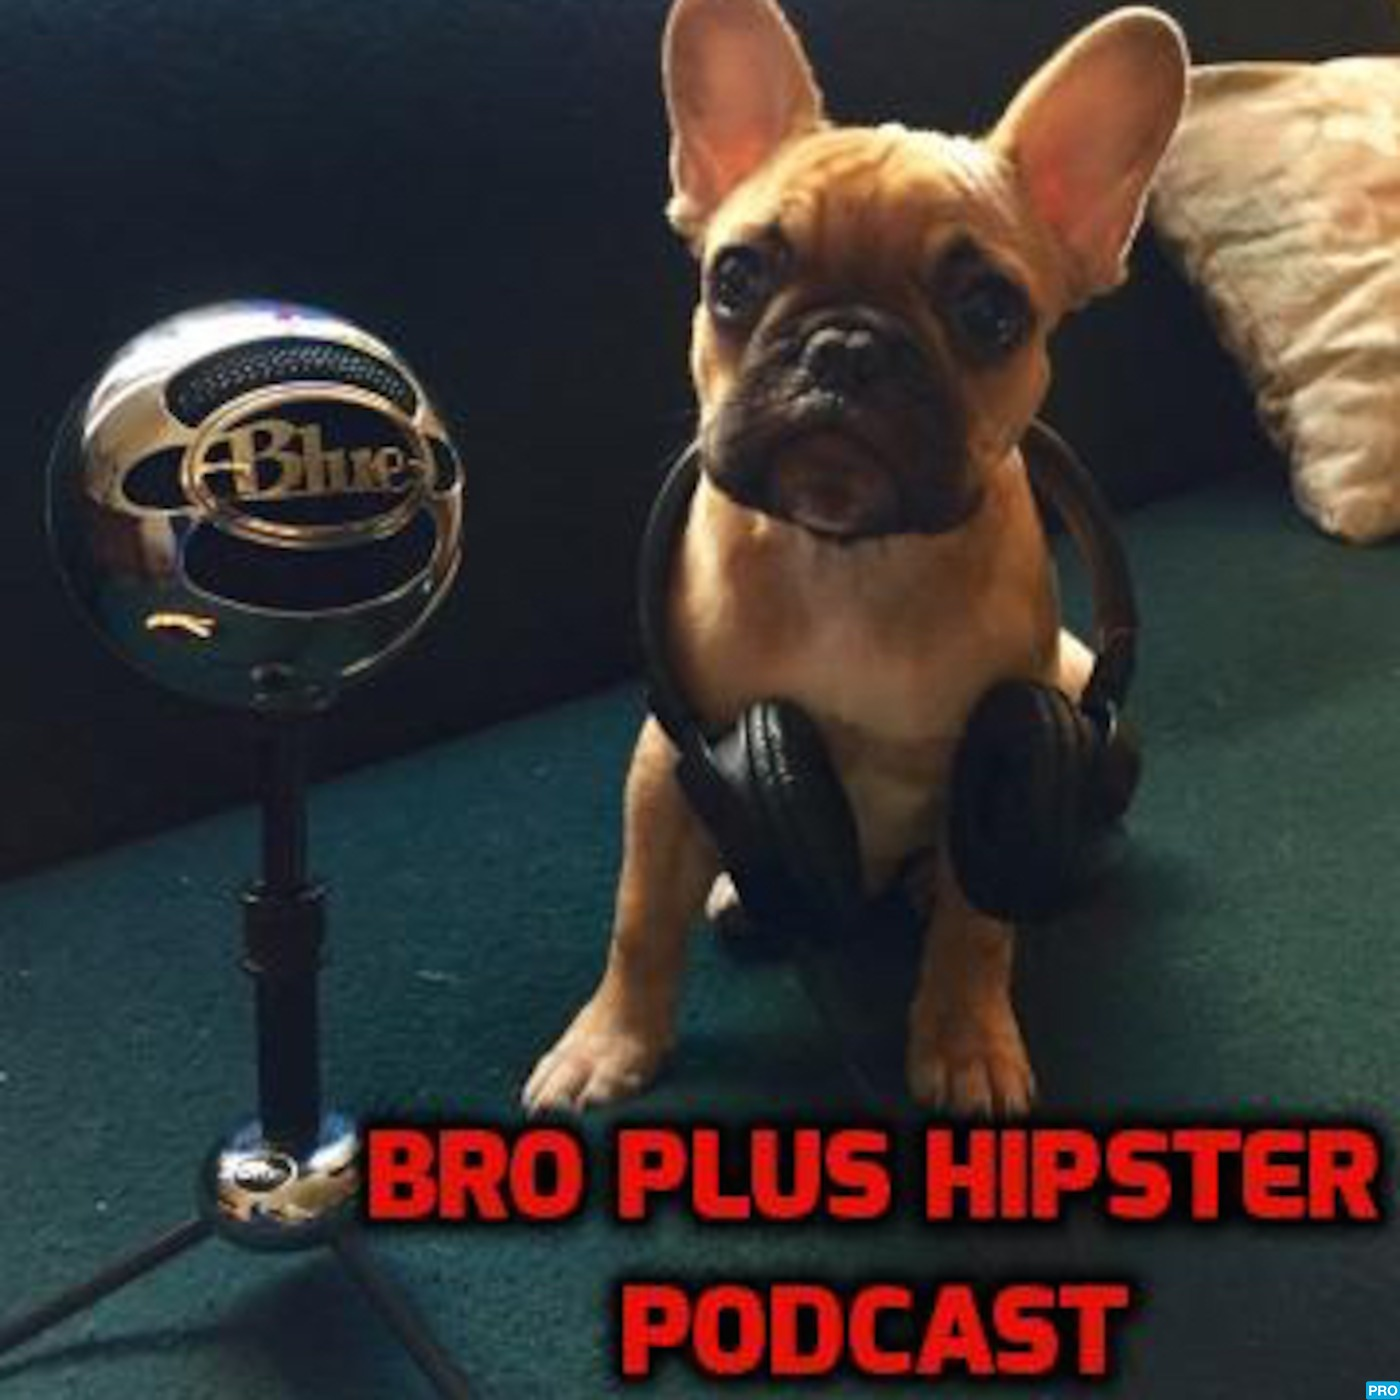 Bro Plus Hipster Podcast